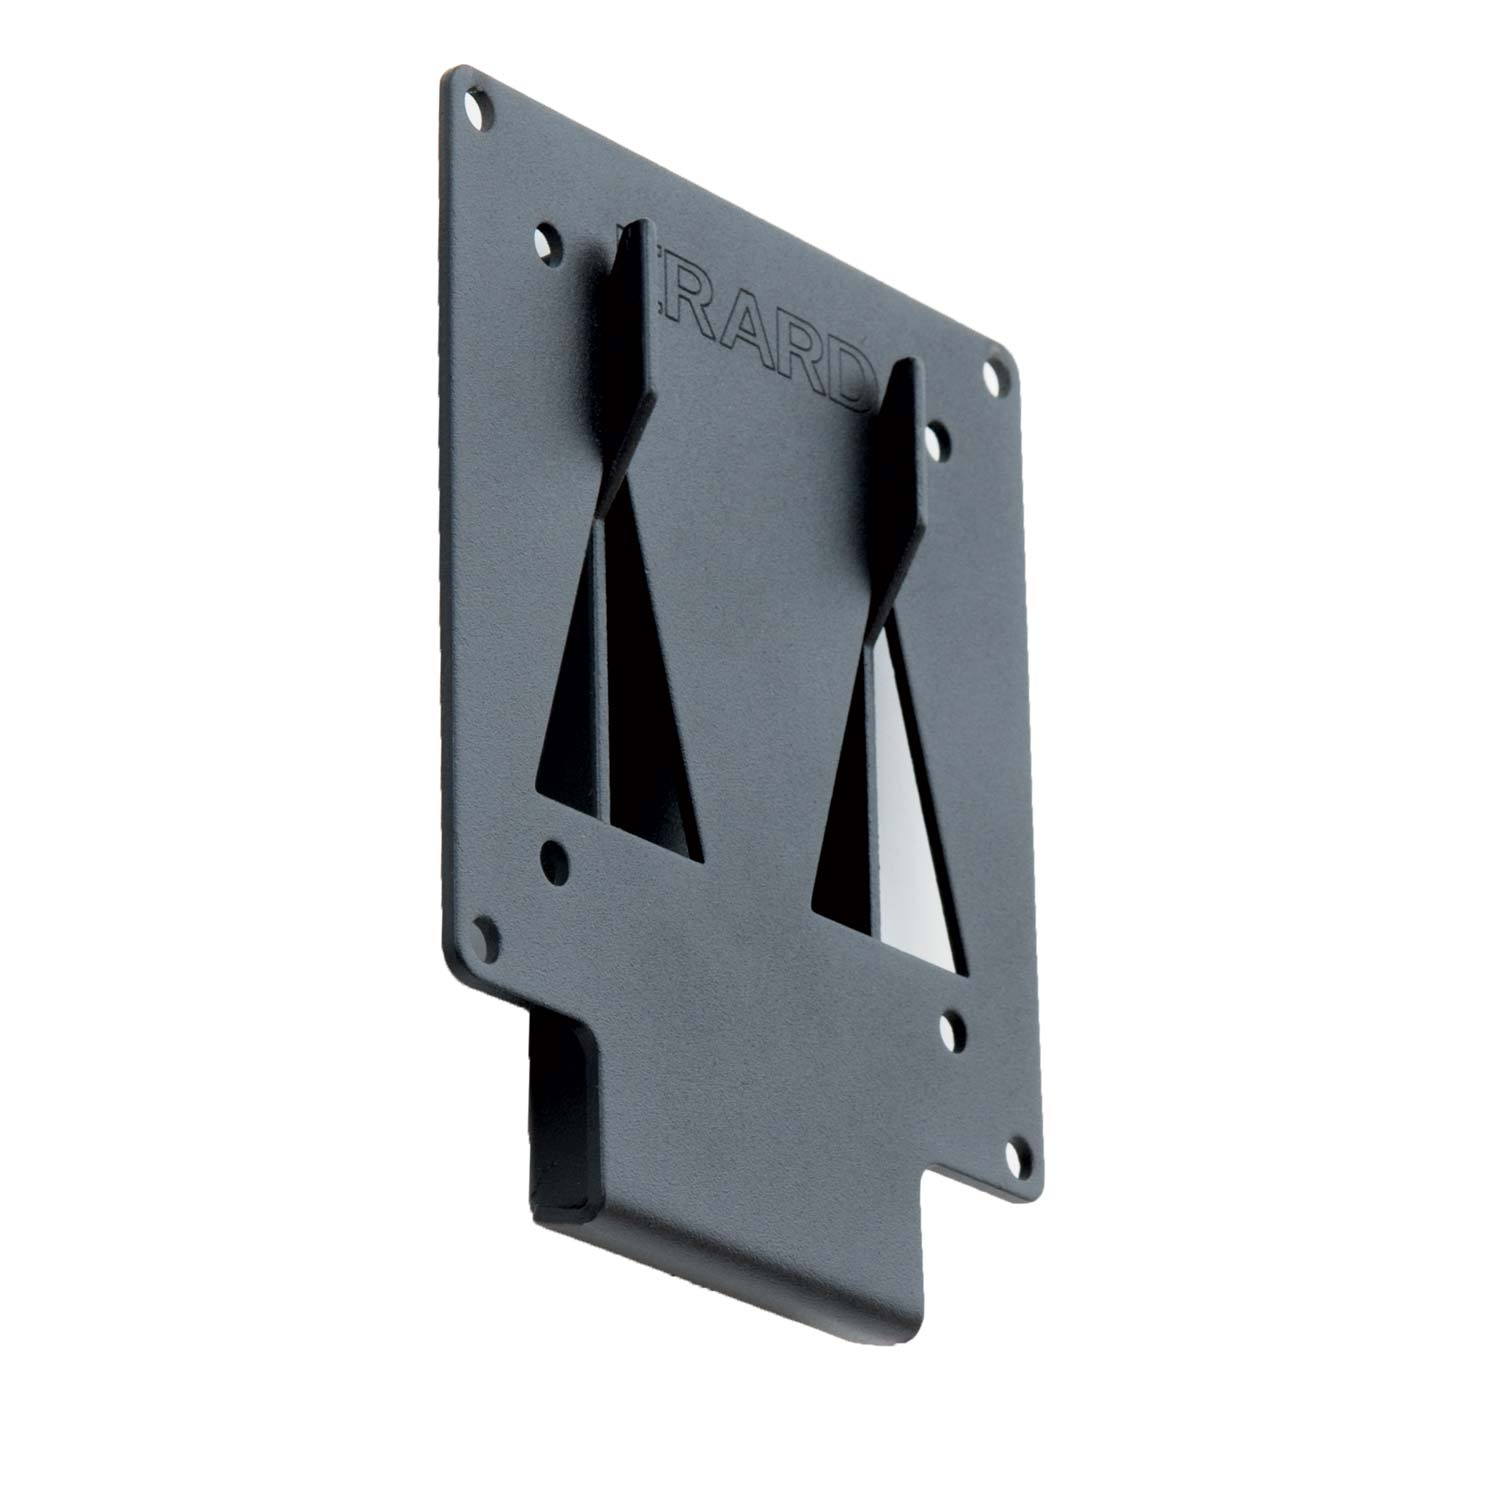 APPLIK FIXED - fixed wall mount for screens up to 15 kg